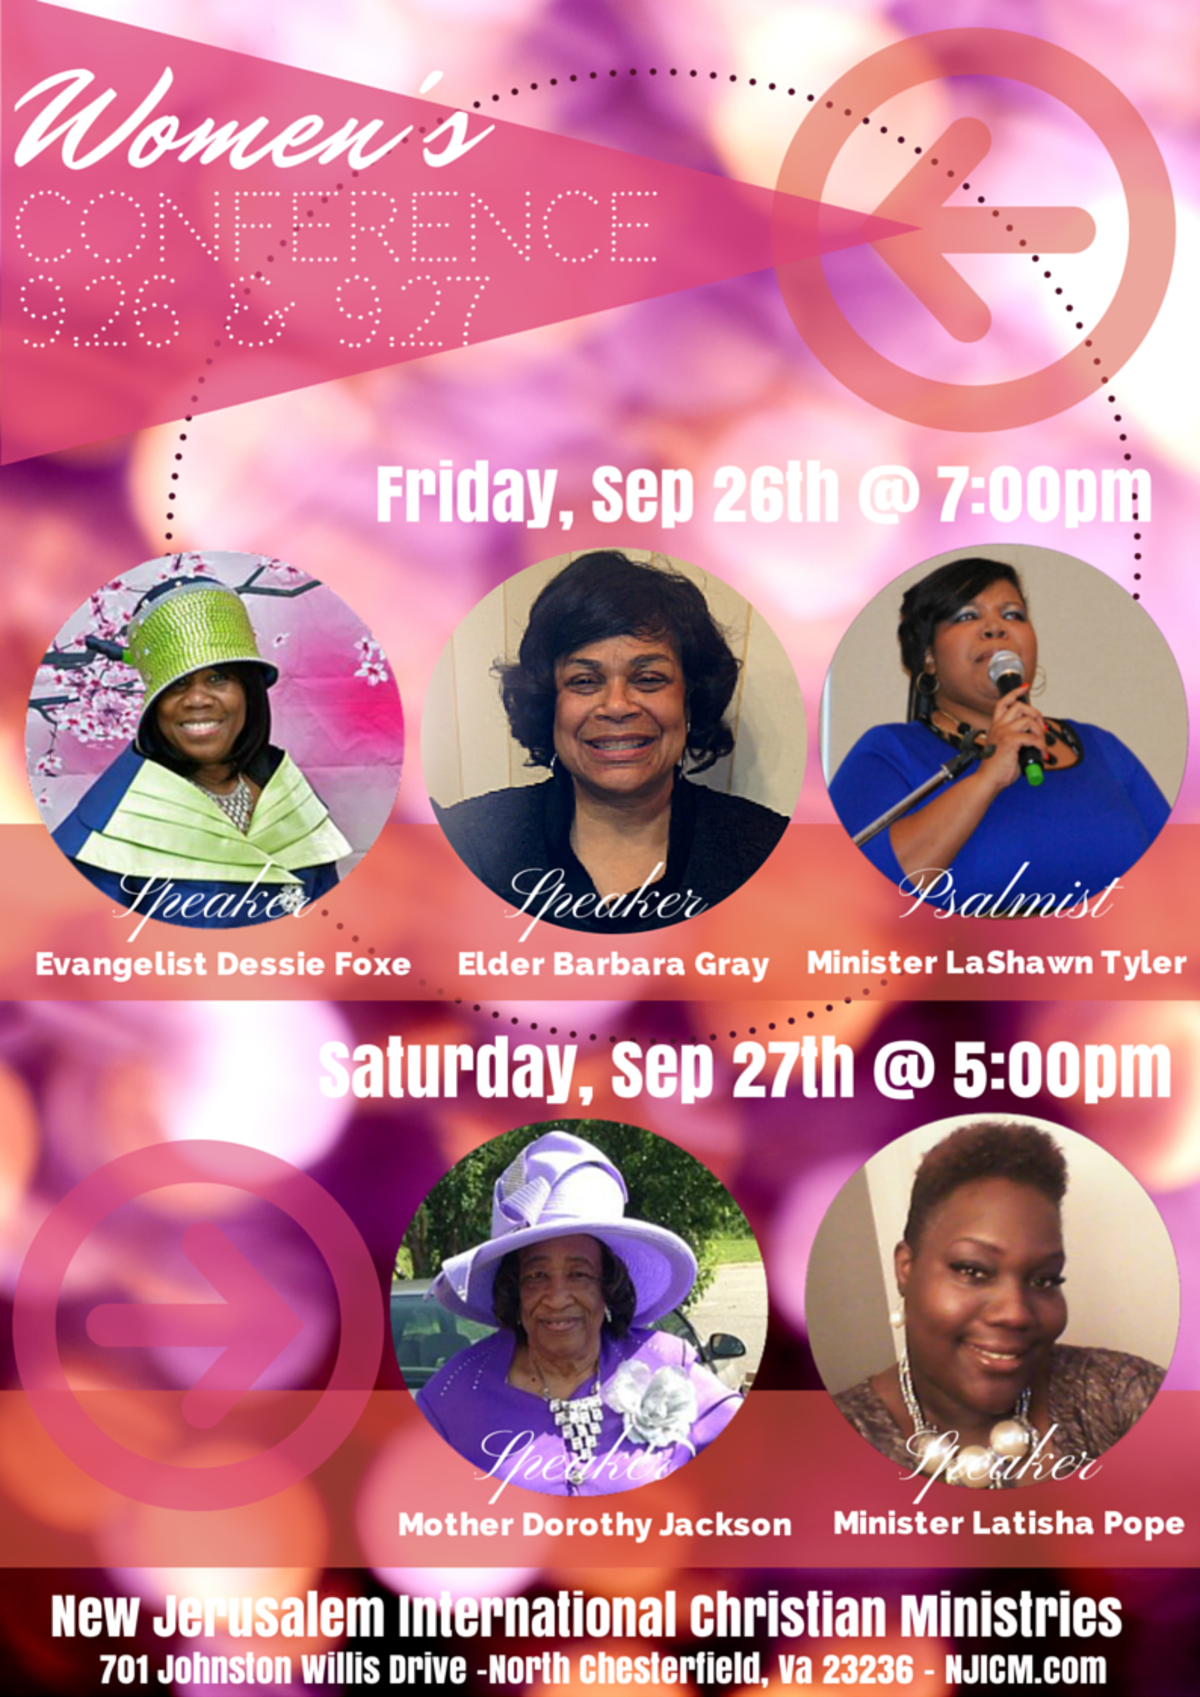 Women's Conference 2014